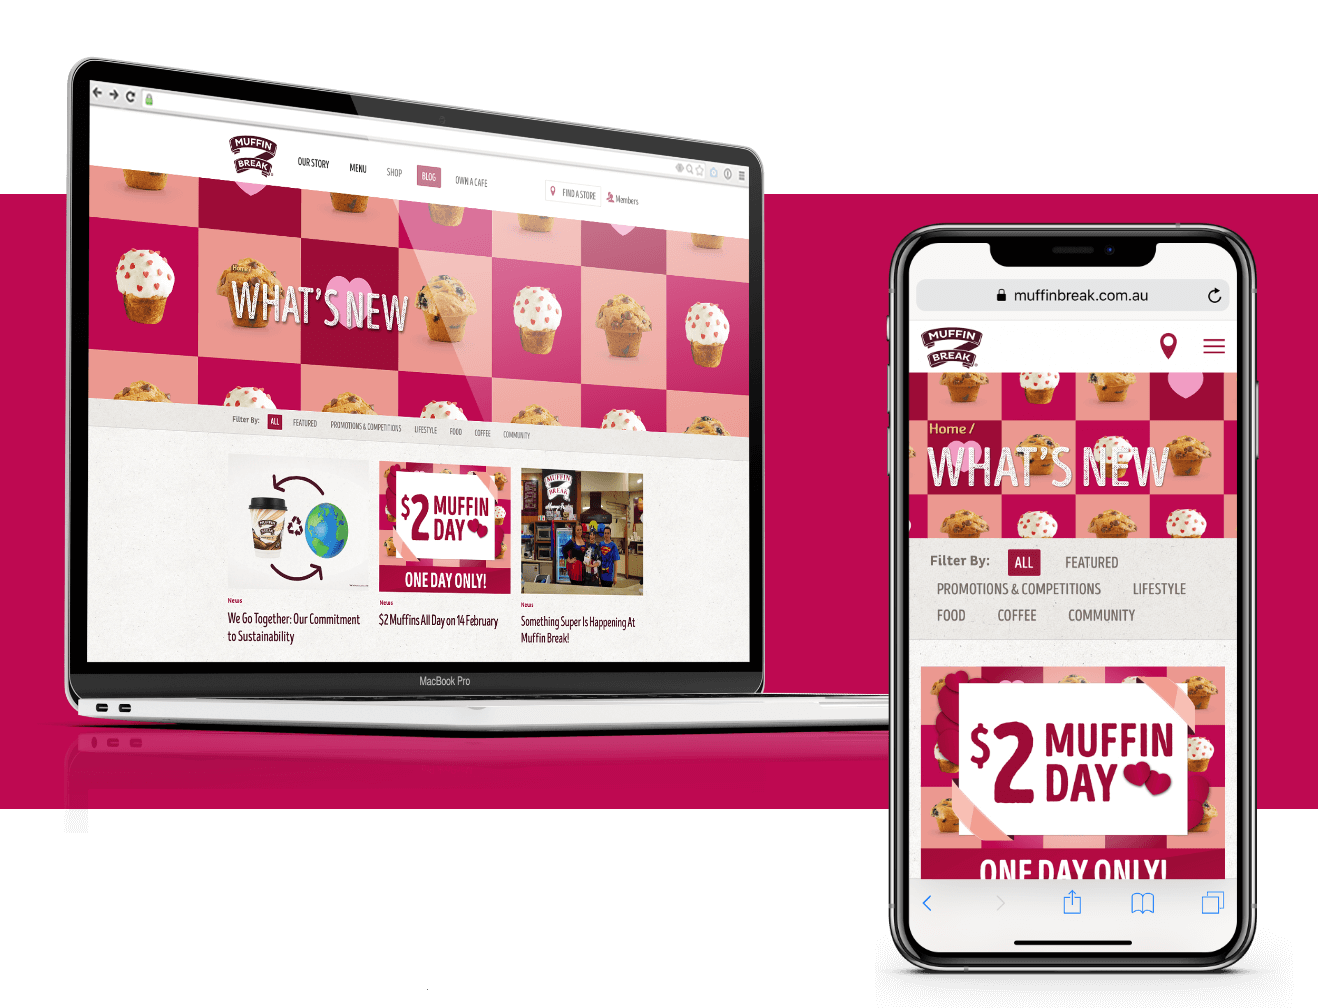 $2 Muffin Day Digital Campaign Earns 53% Uplift in Sales